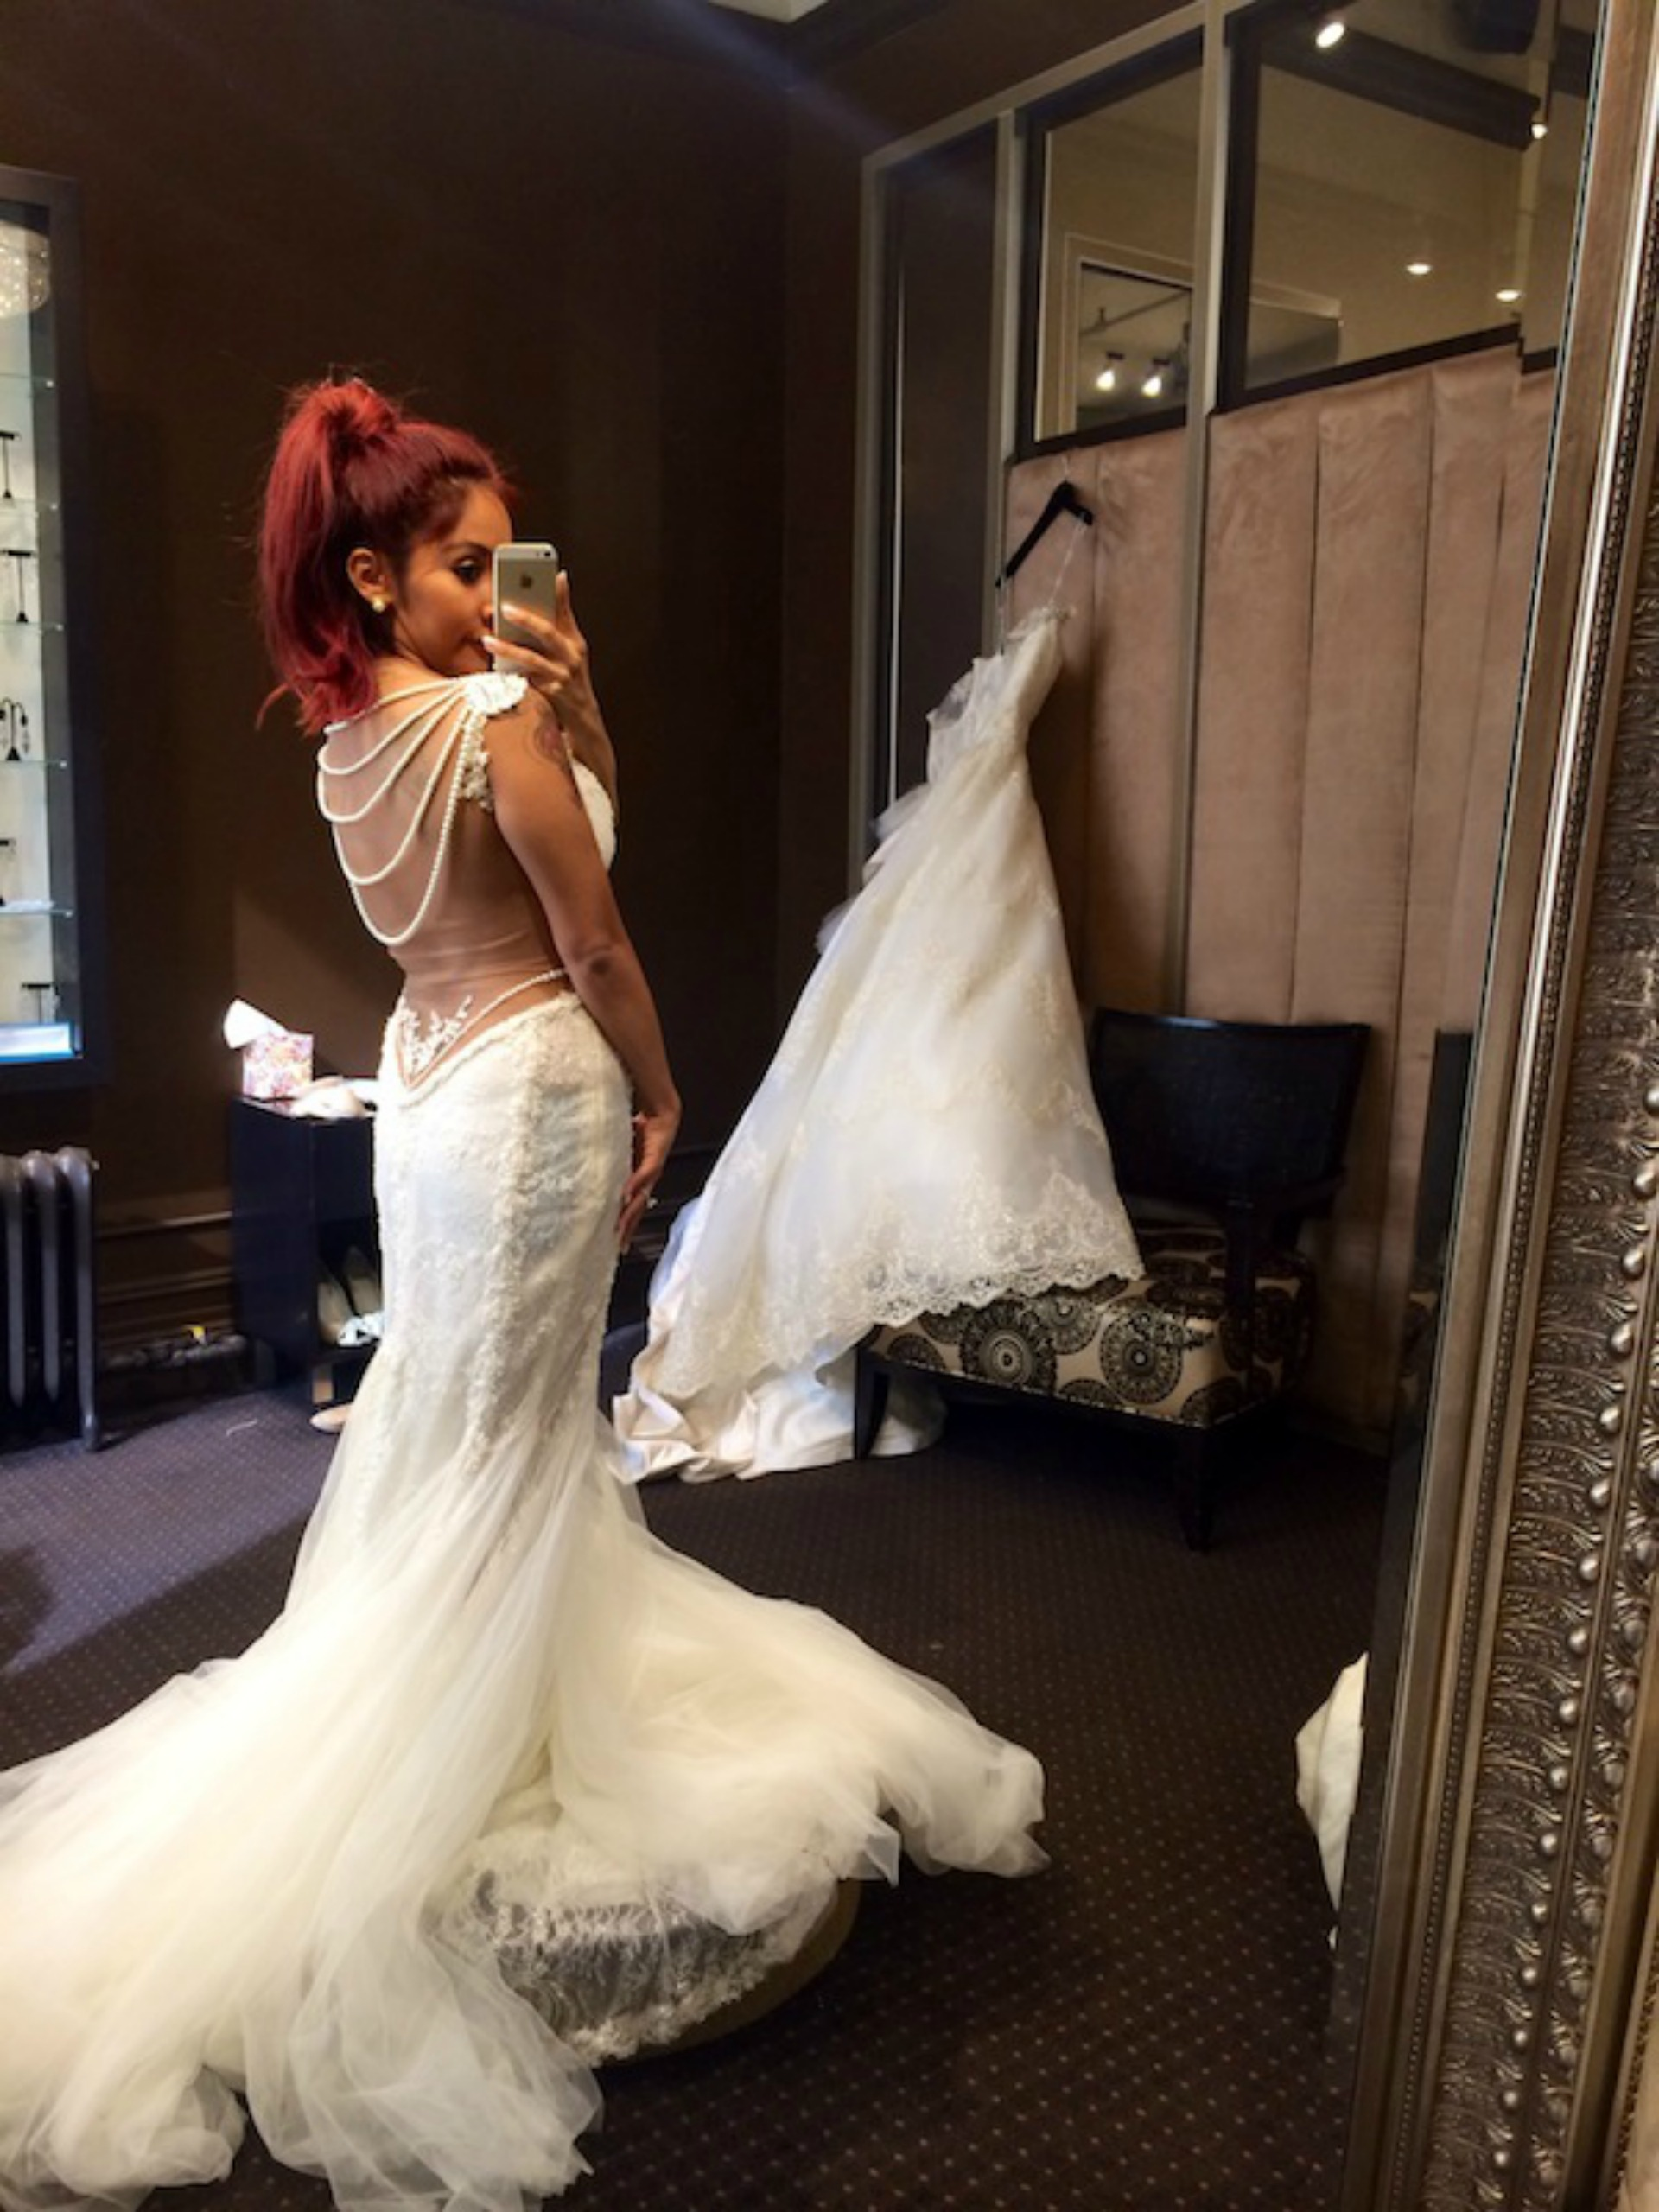 Snooki shares picture of herself in wedding dress via her blog